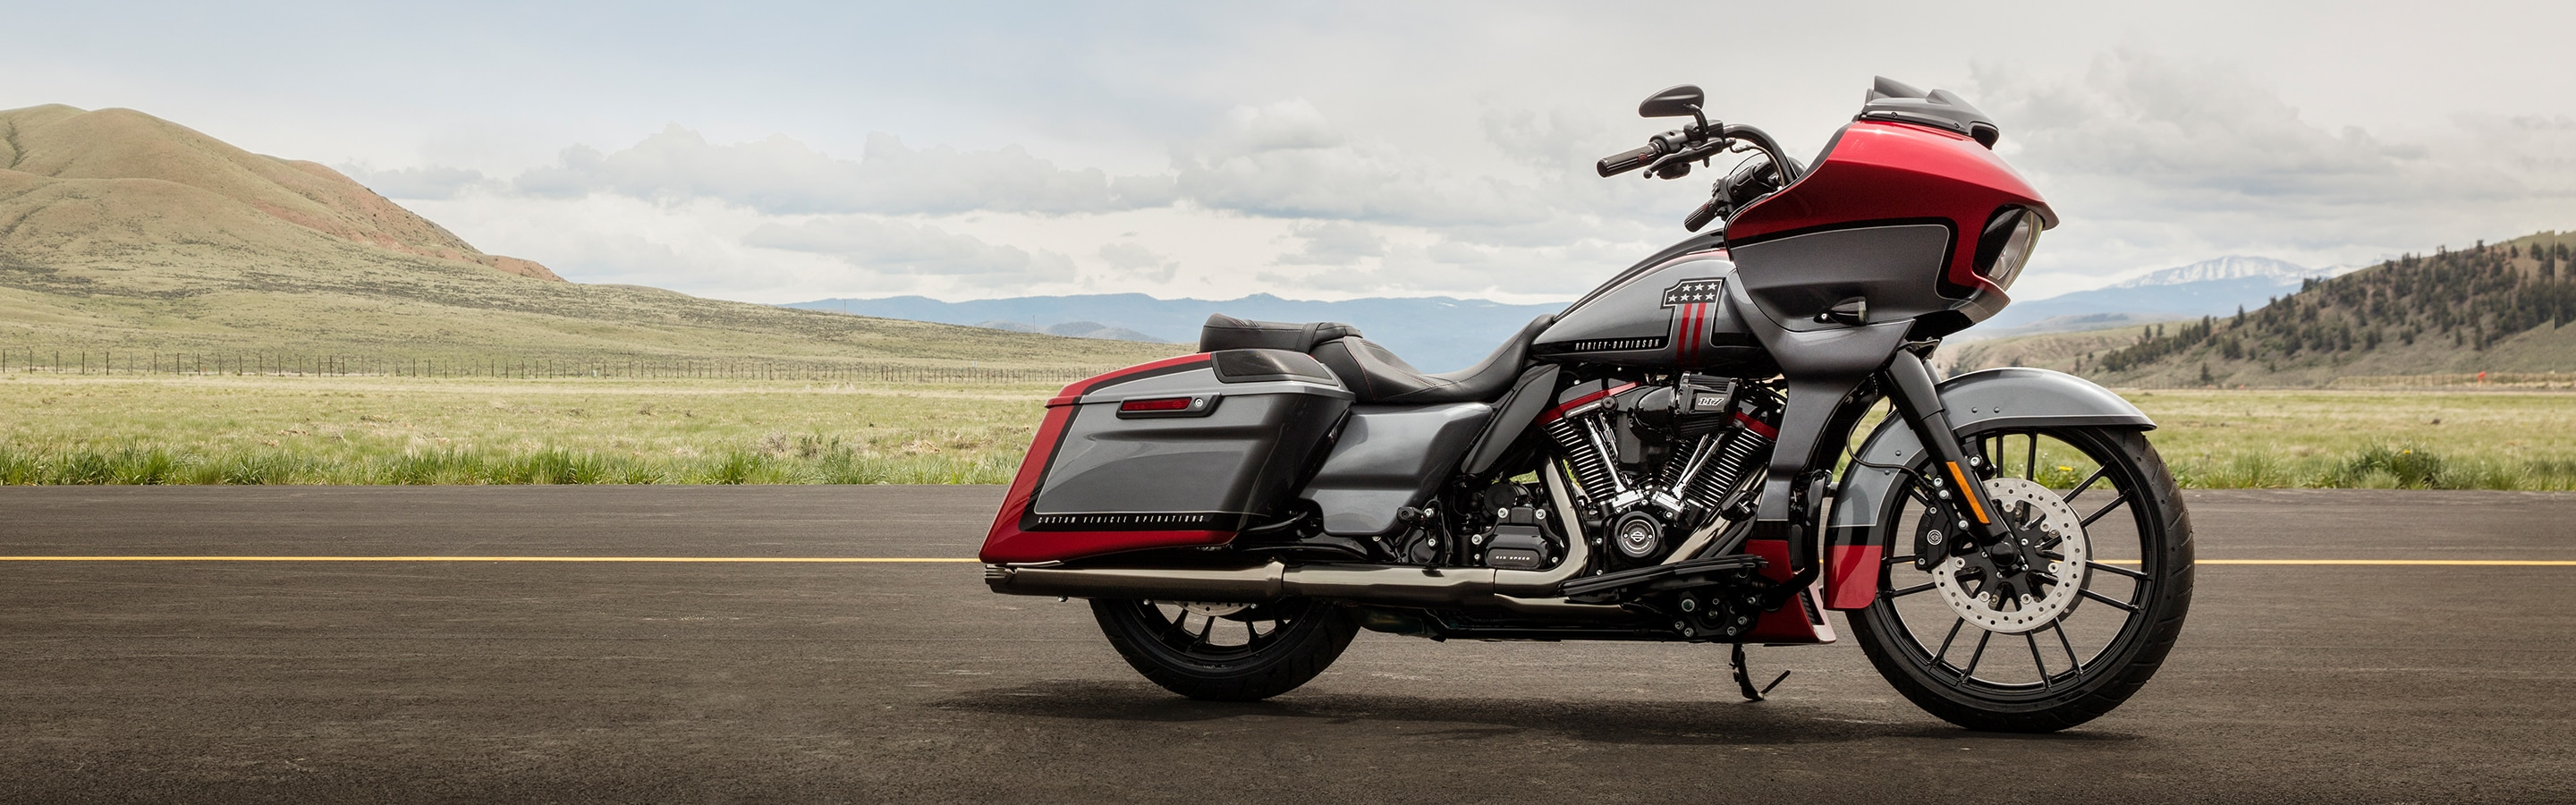 2019 CVO  H-D Motorcycle Parked On A Road